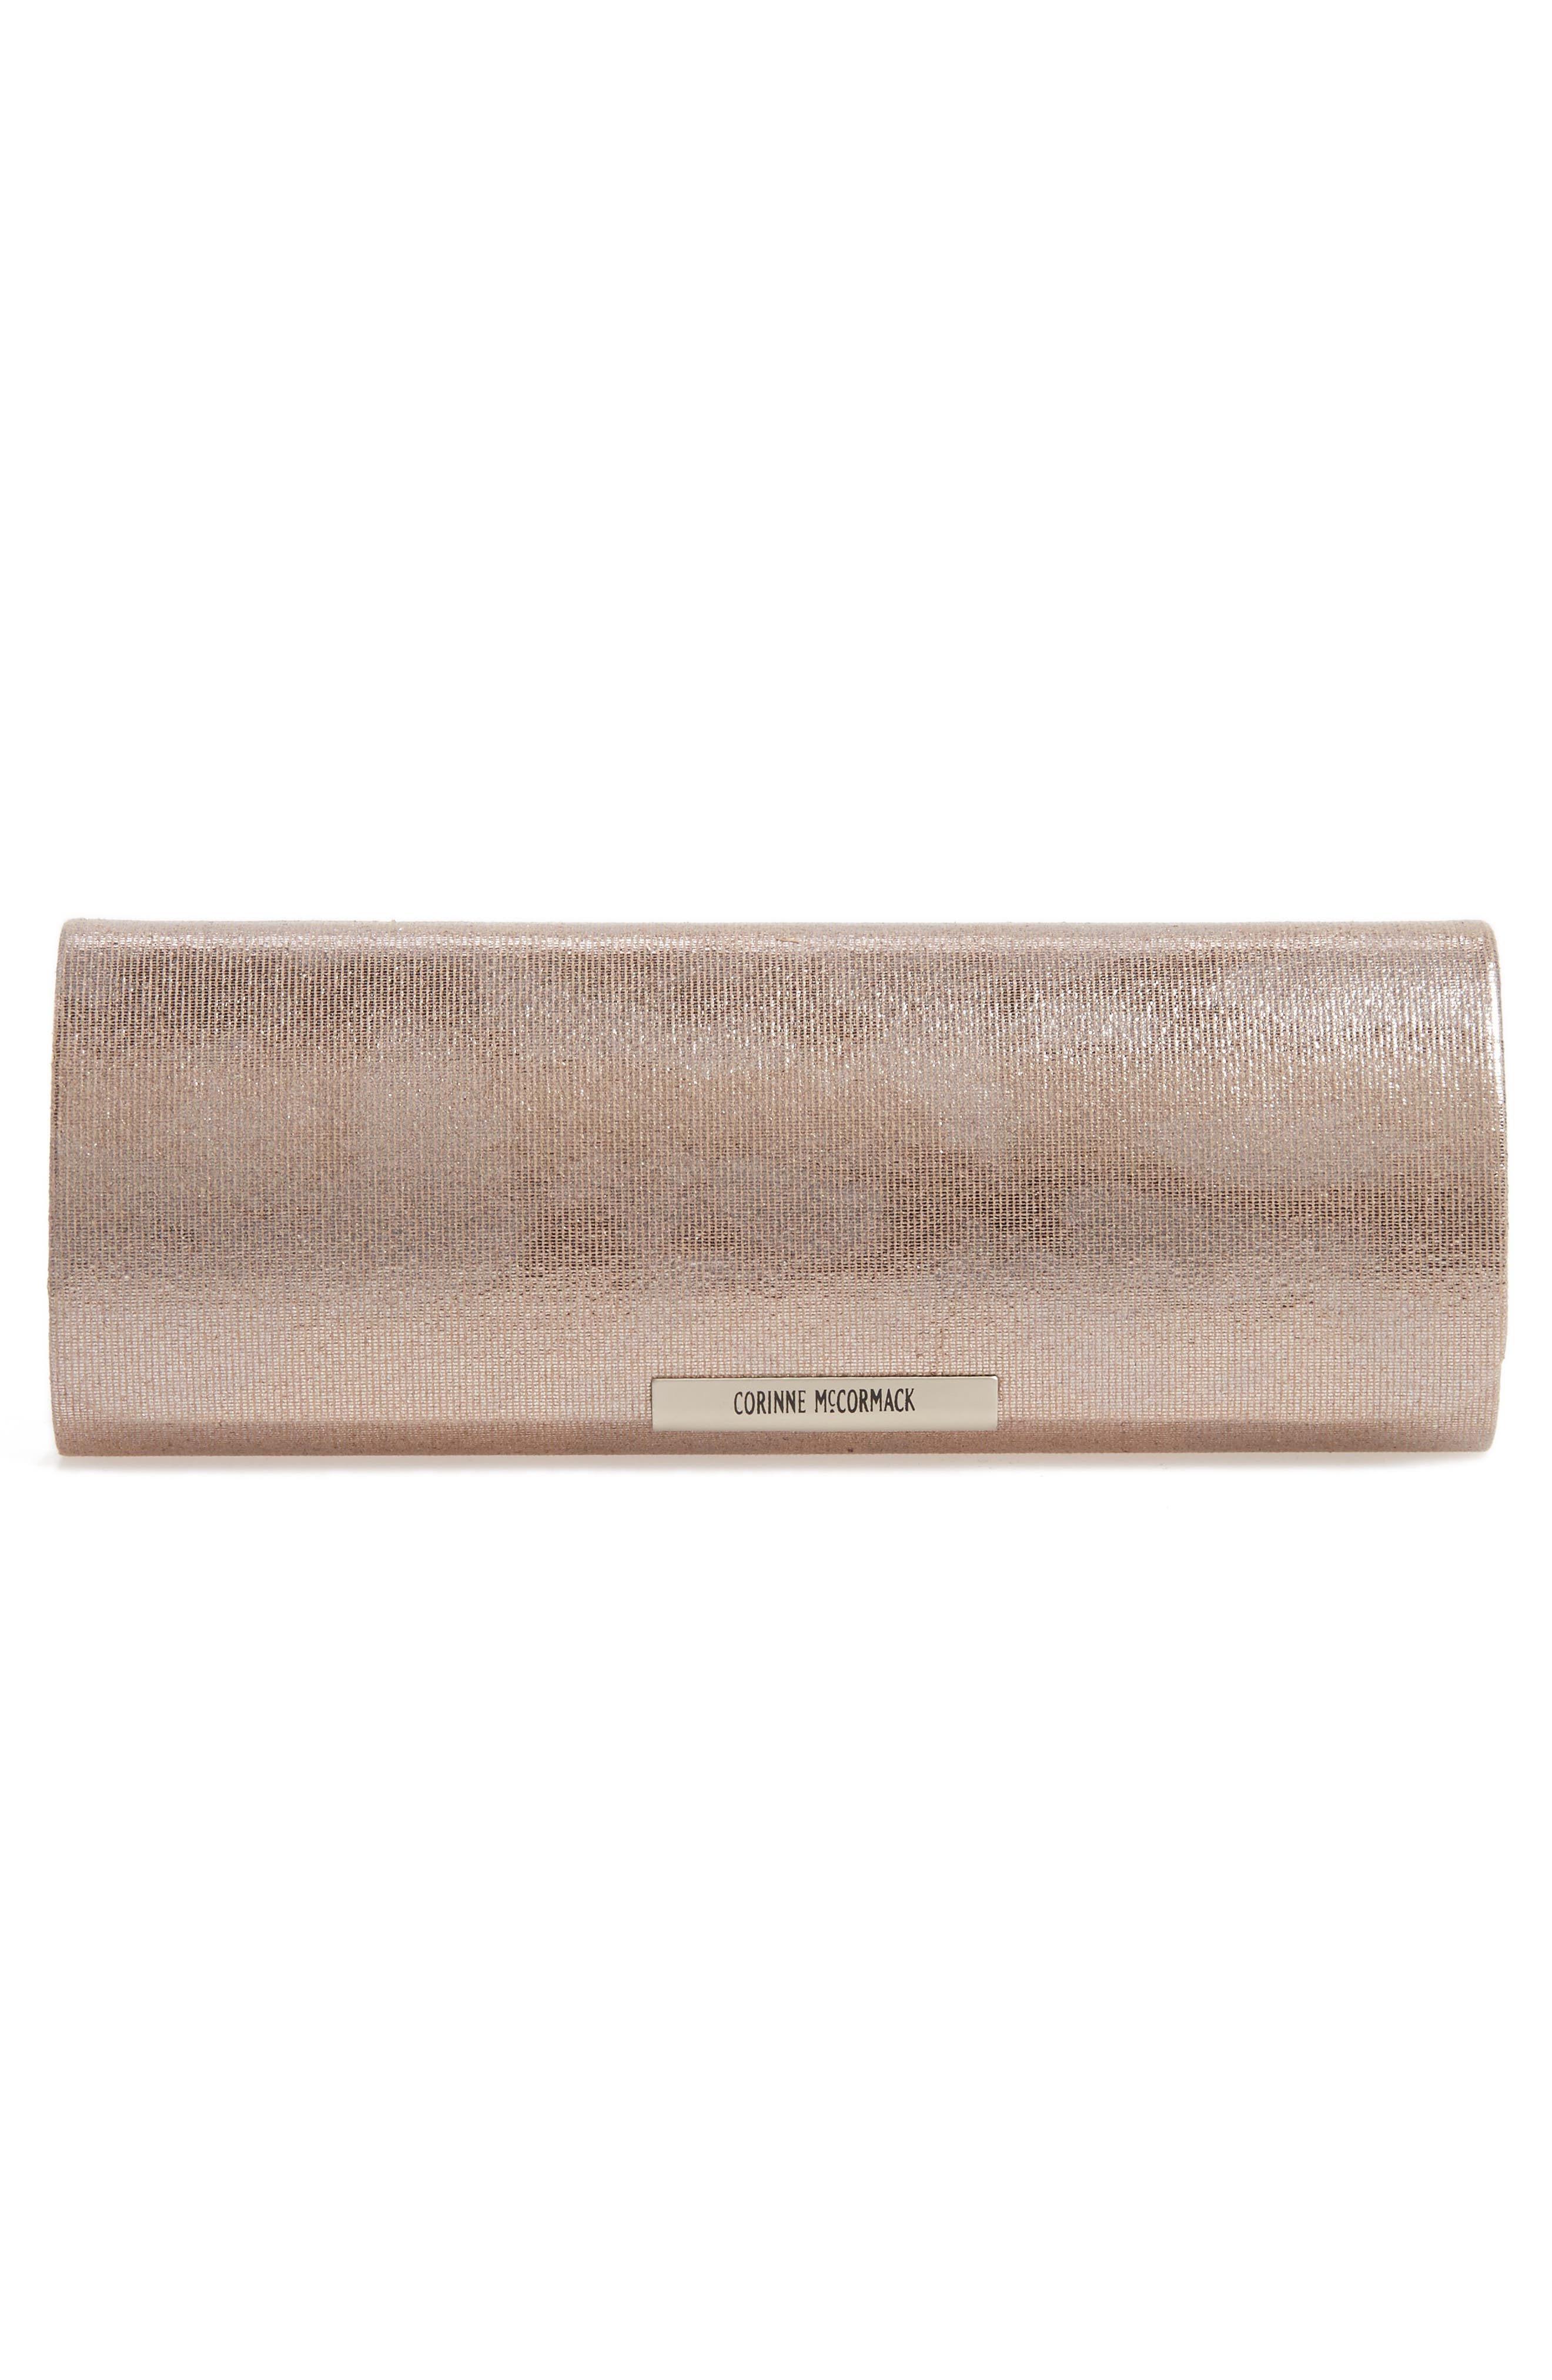 Oval Reading Glasses Case,                         Main,                         color, 250